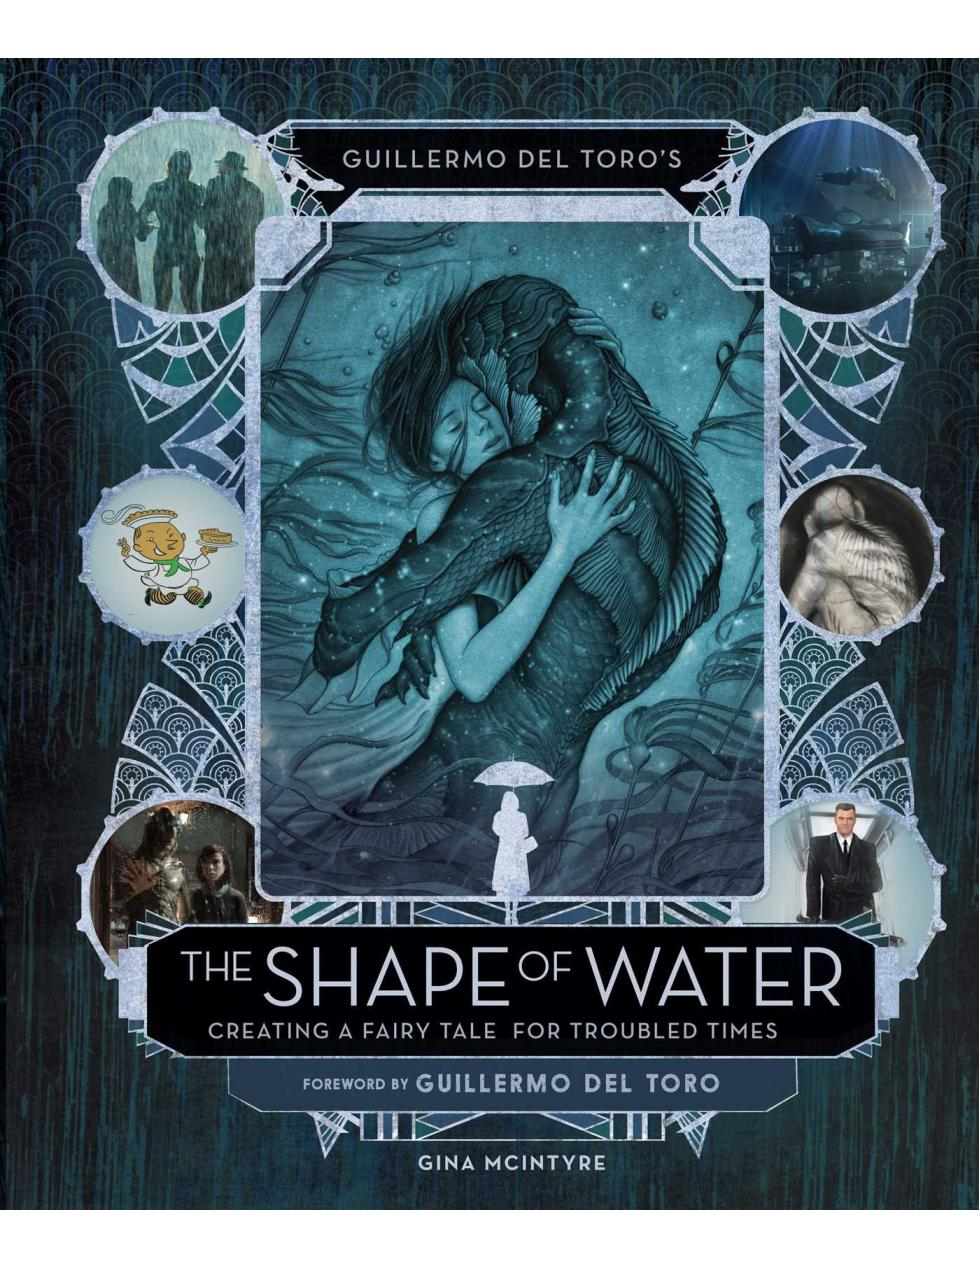 Guillermo del Toro's The Shape of Water: Creating a Fairy Tale for Troubled Times - Boekenmarkt de Markies